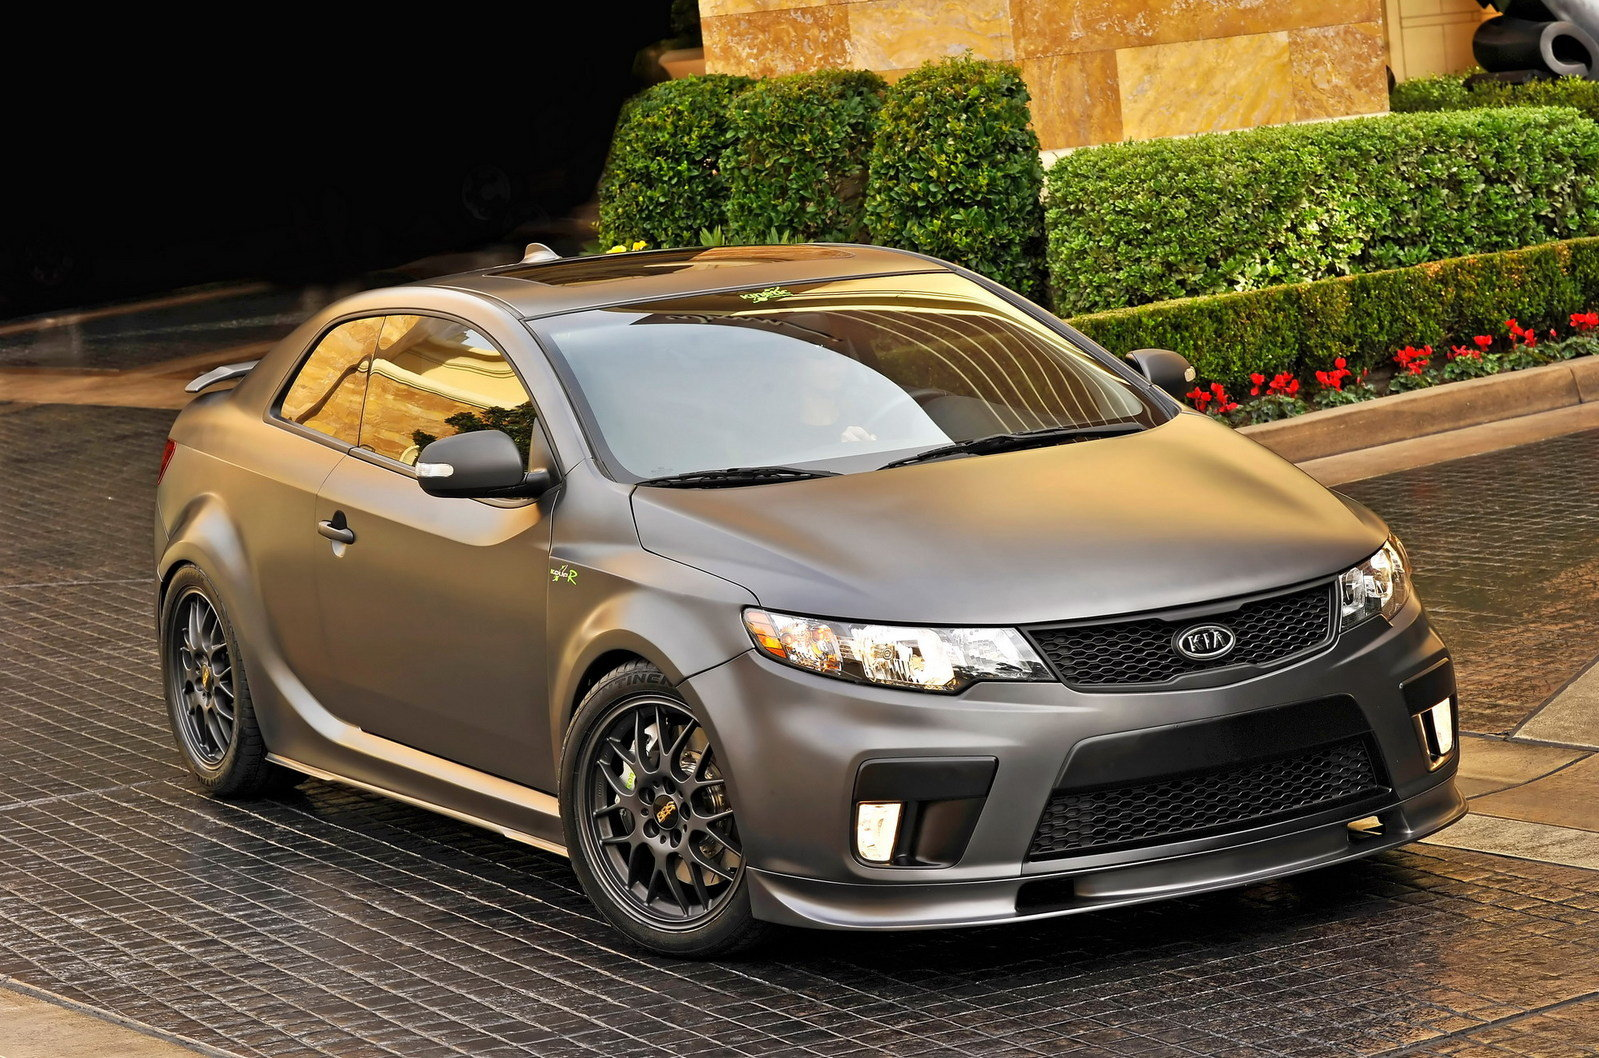 2010 kia forte koup type r concept review top speed. Black Bedroom Furniture Sets. Home Design Ideas